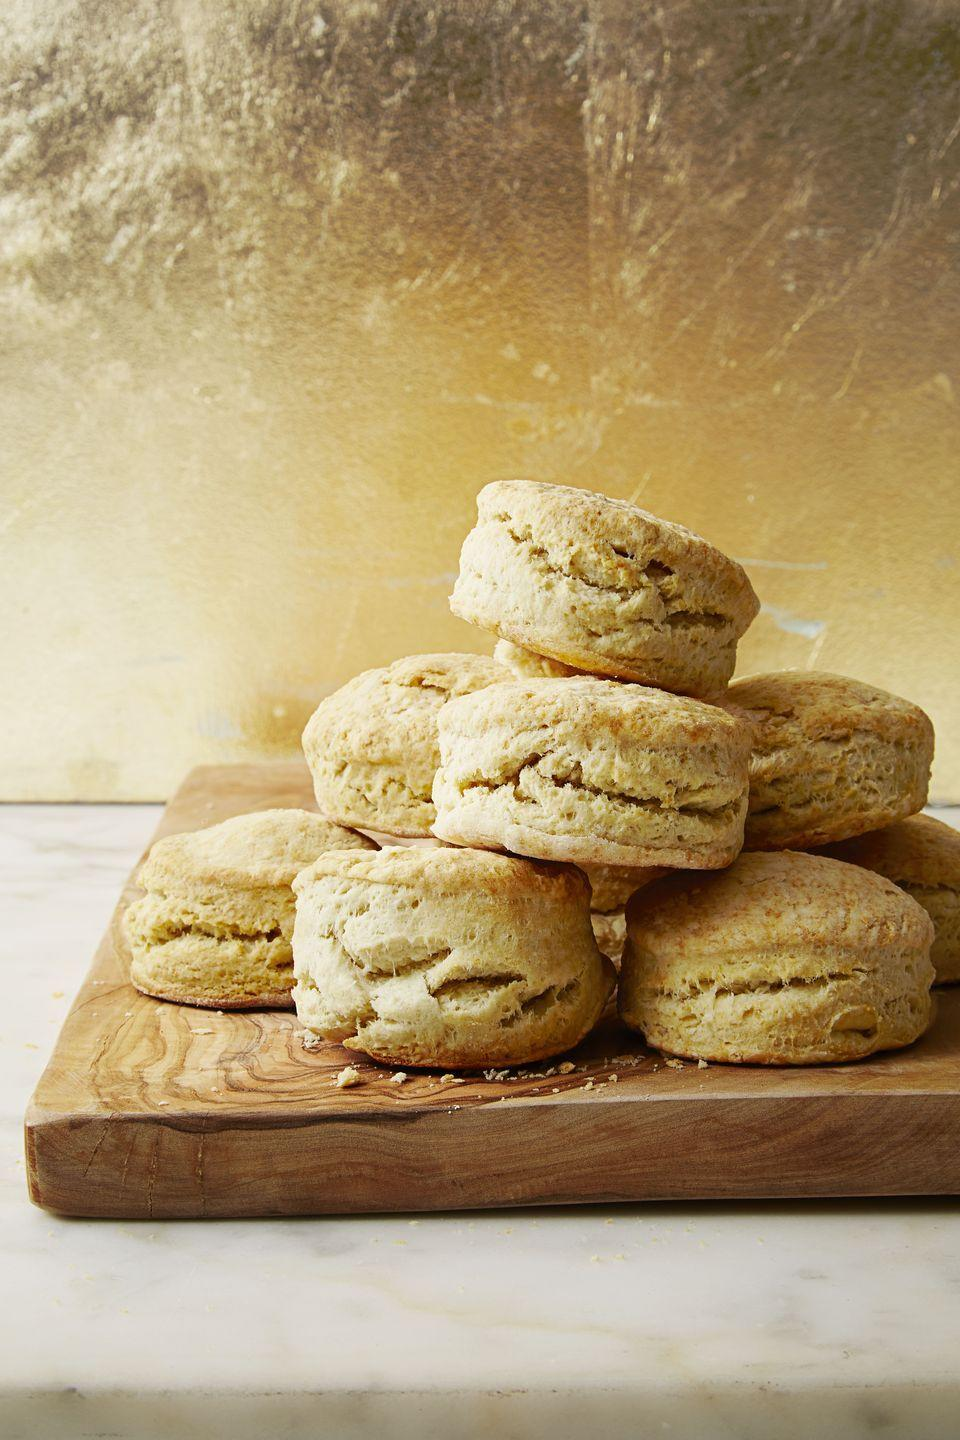 "<p>Don't even think about not making biscuits for your brunch. </p><p><em><a href=""https://www.goodhousekeeping.com/food-recipes/a37457/best-ever-buttermilk-biscuits-recipe/"" rel=""nofollow noopener"" target=""_blank"" data-ylk=""slk:Get the recipe for Best-Ever Buttermilk Biscuits »"" class=""link rapid-noclick-resp"">Get the recipe for Best-Ever Buttermilk Biscuits »</a></em></p>"